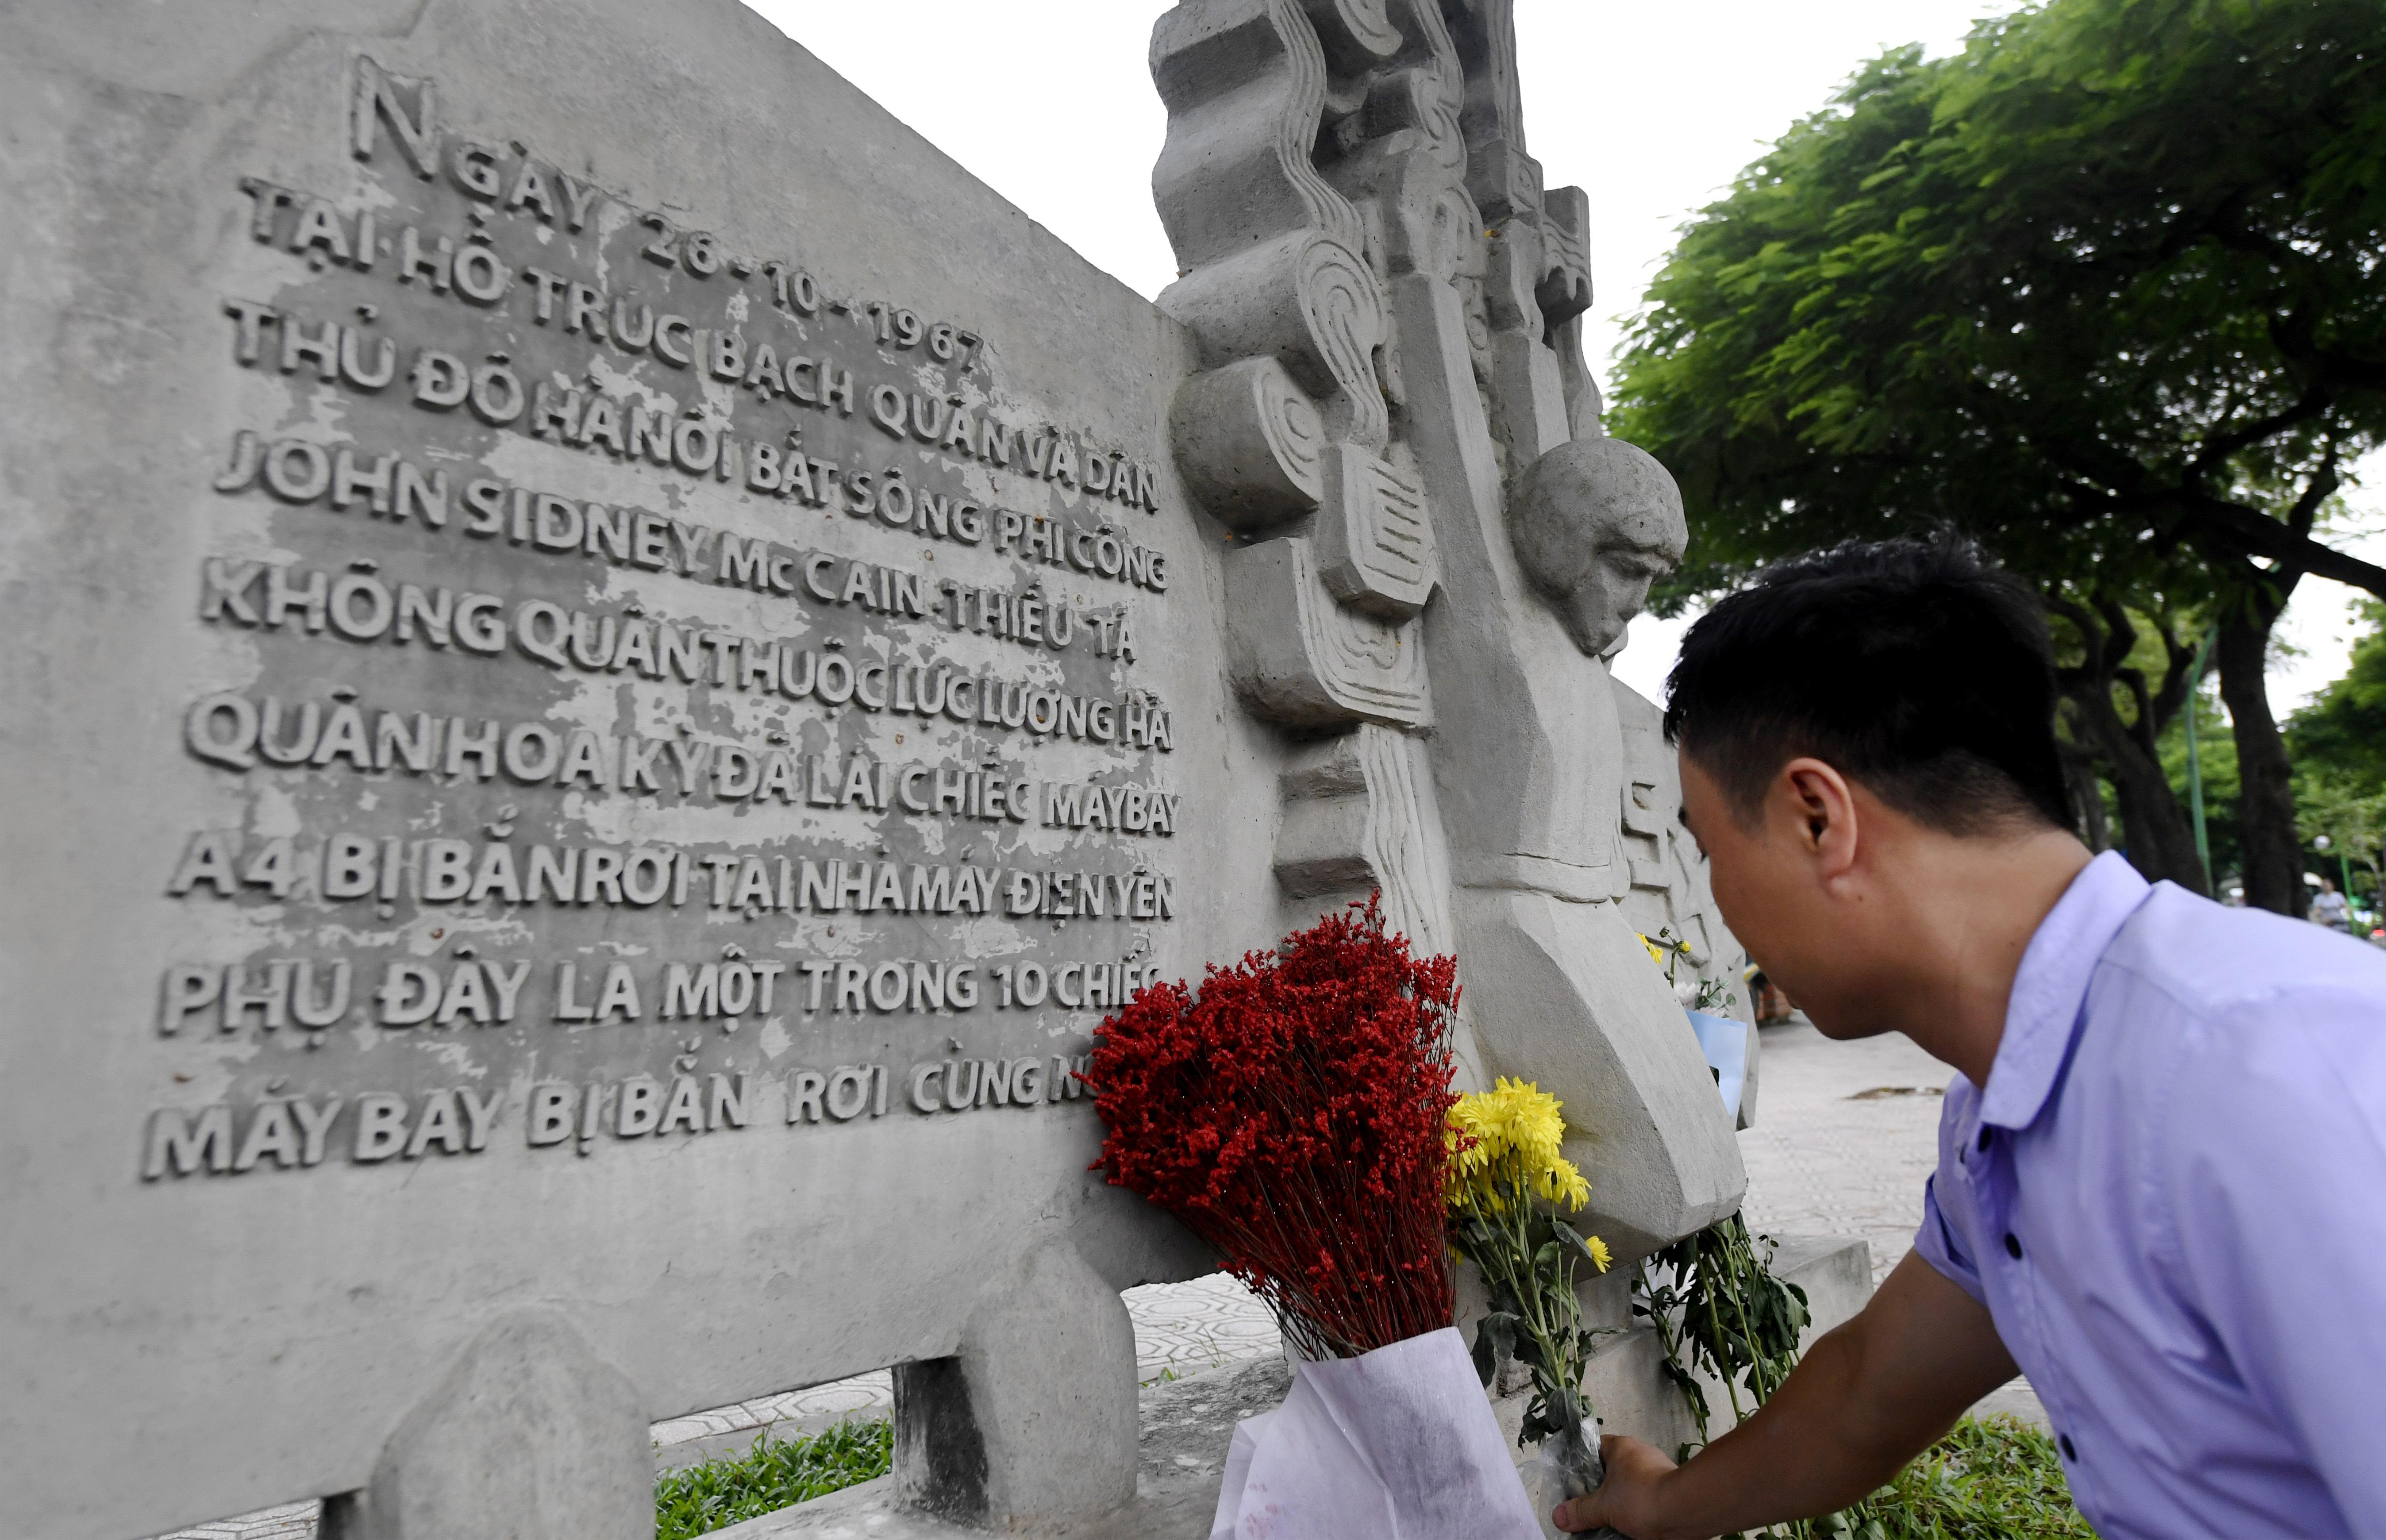 A Vietnamese man places flowers for McCain at a sculpture depicting his capture in Vietnam.